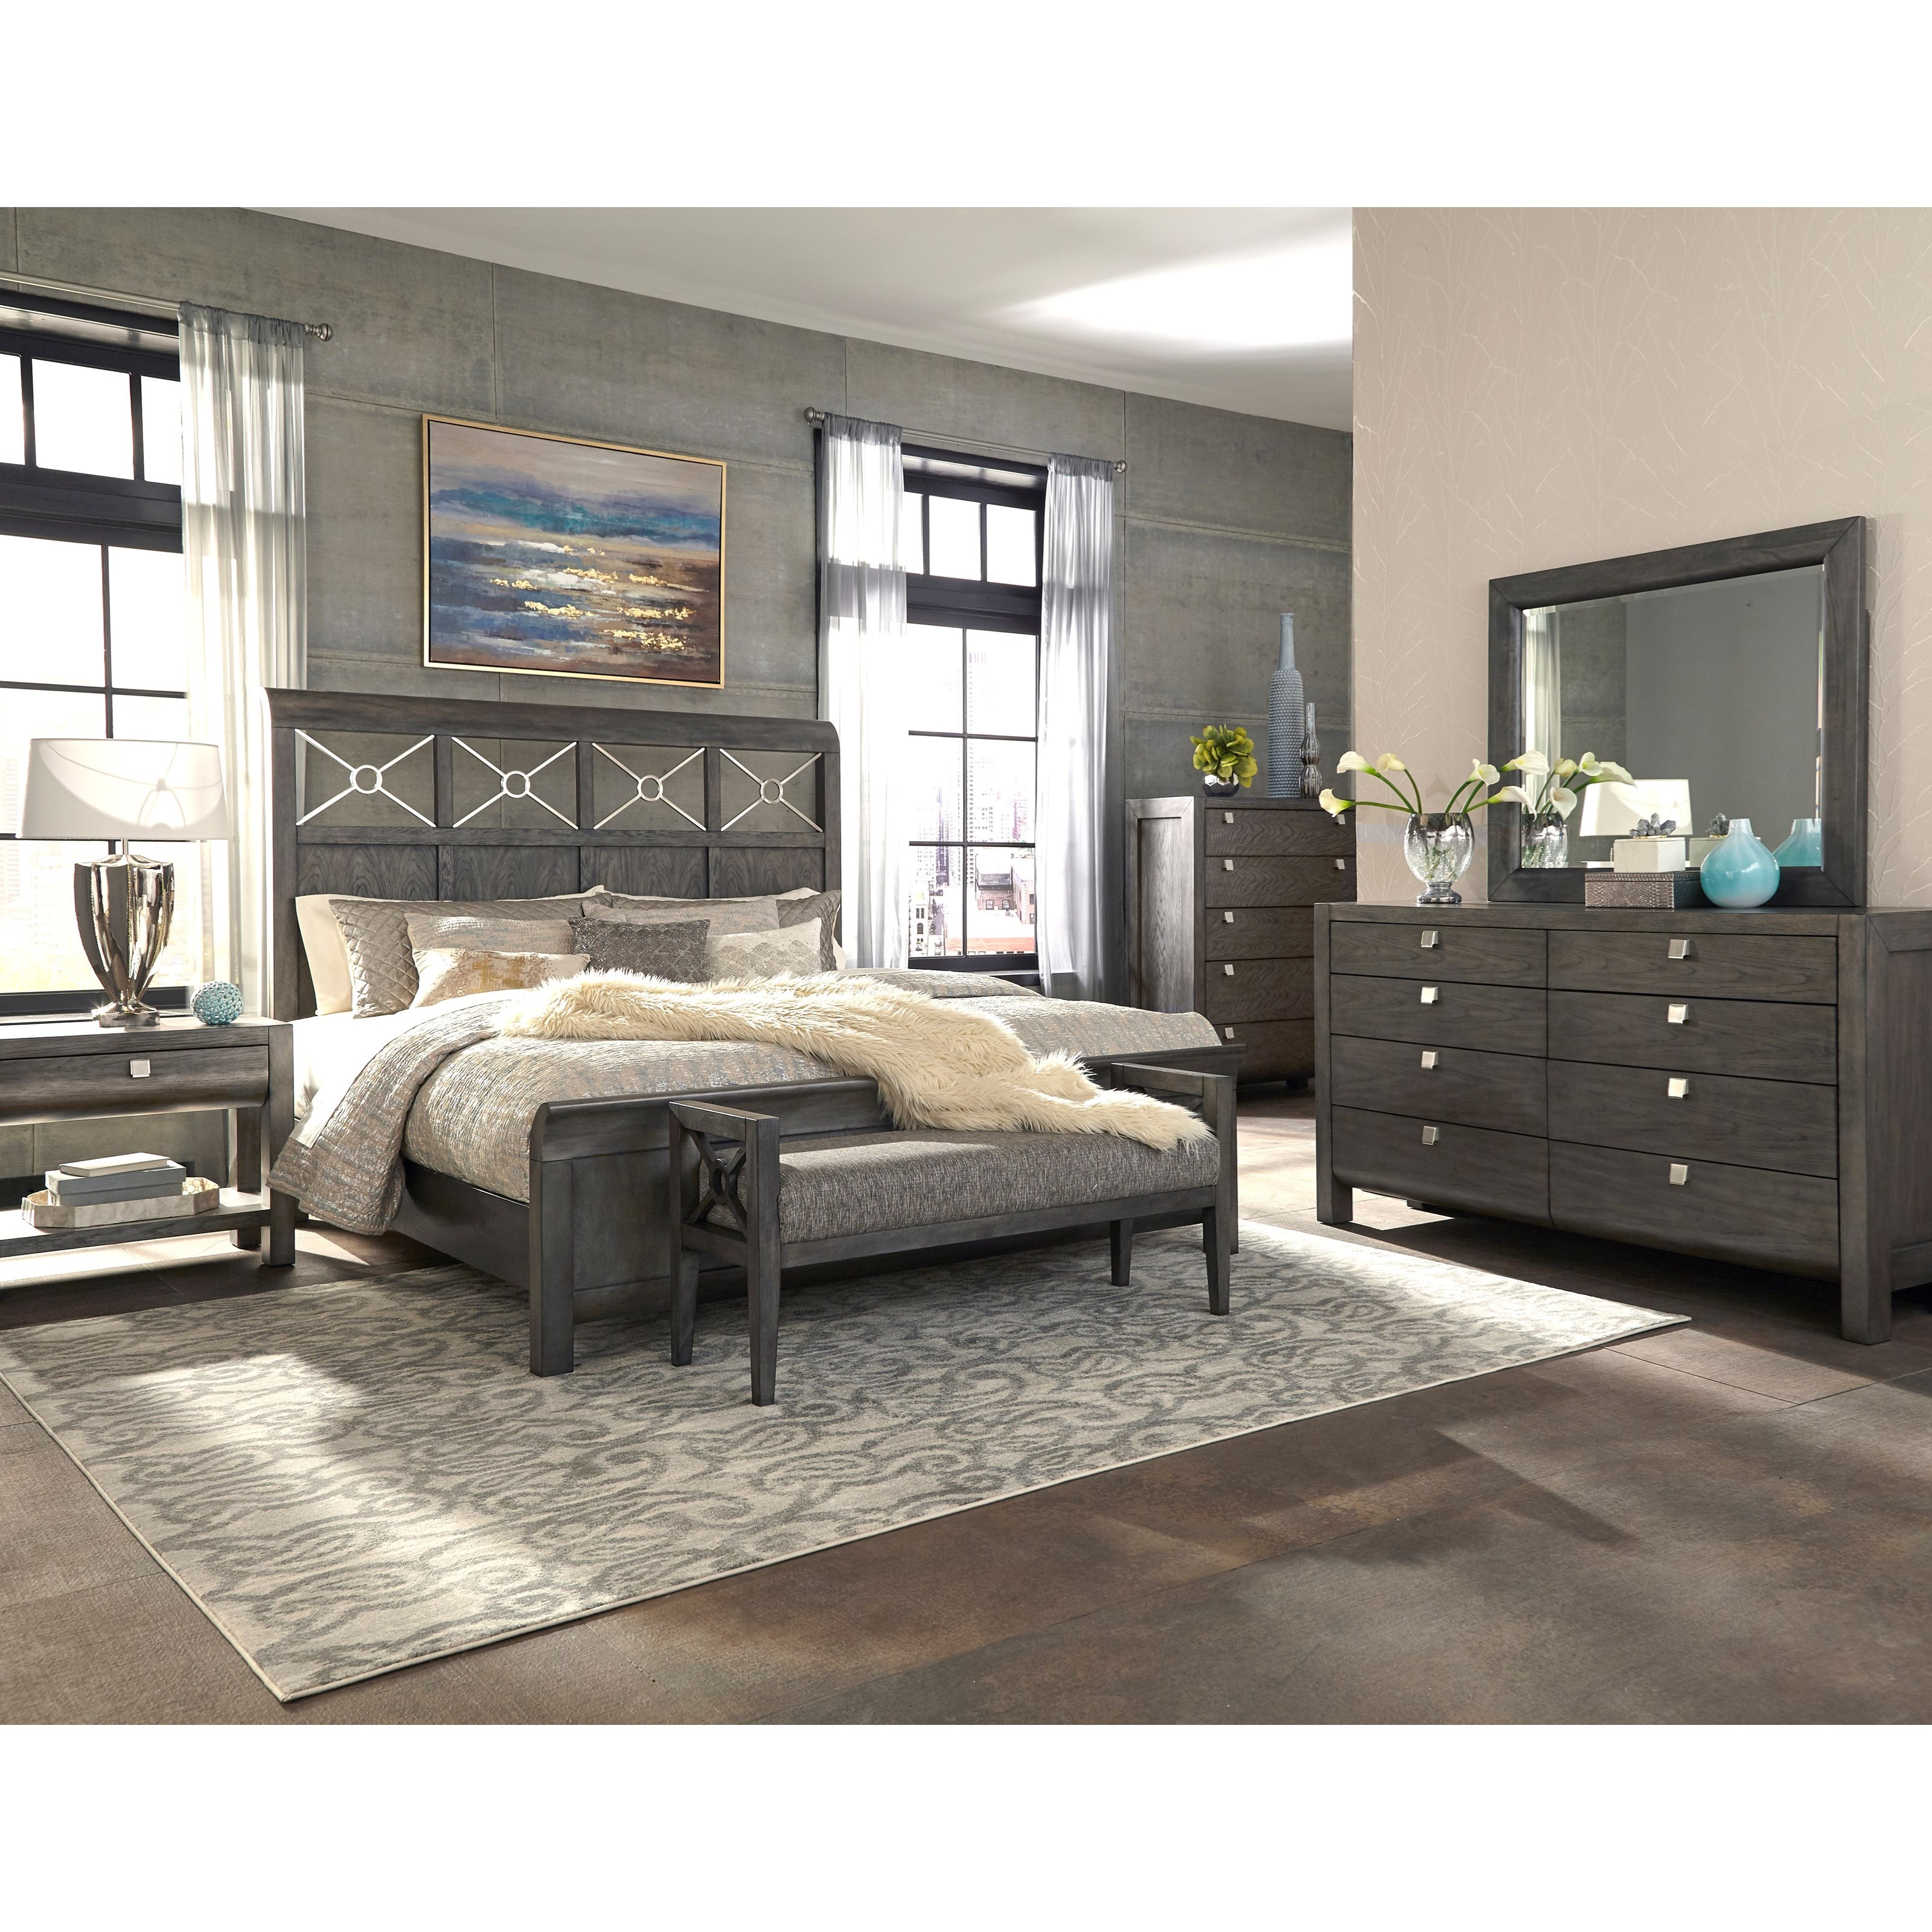 trisha yearwood home collection by klaussner music city queen bedroom group hudson 39 s furniture. Black Bedroom Furniture Sets. Home Design Ideas